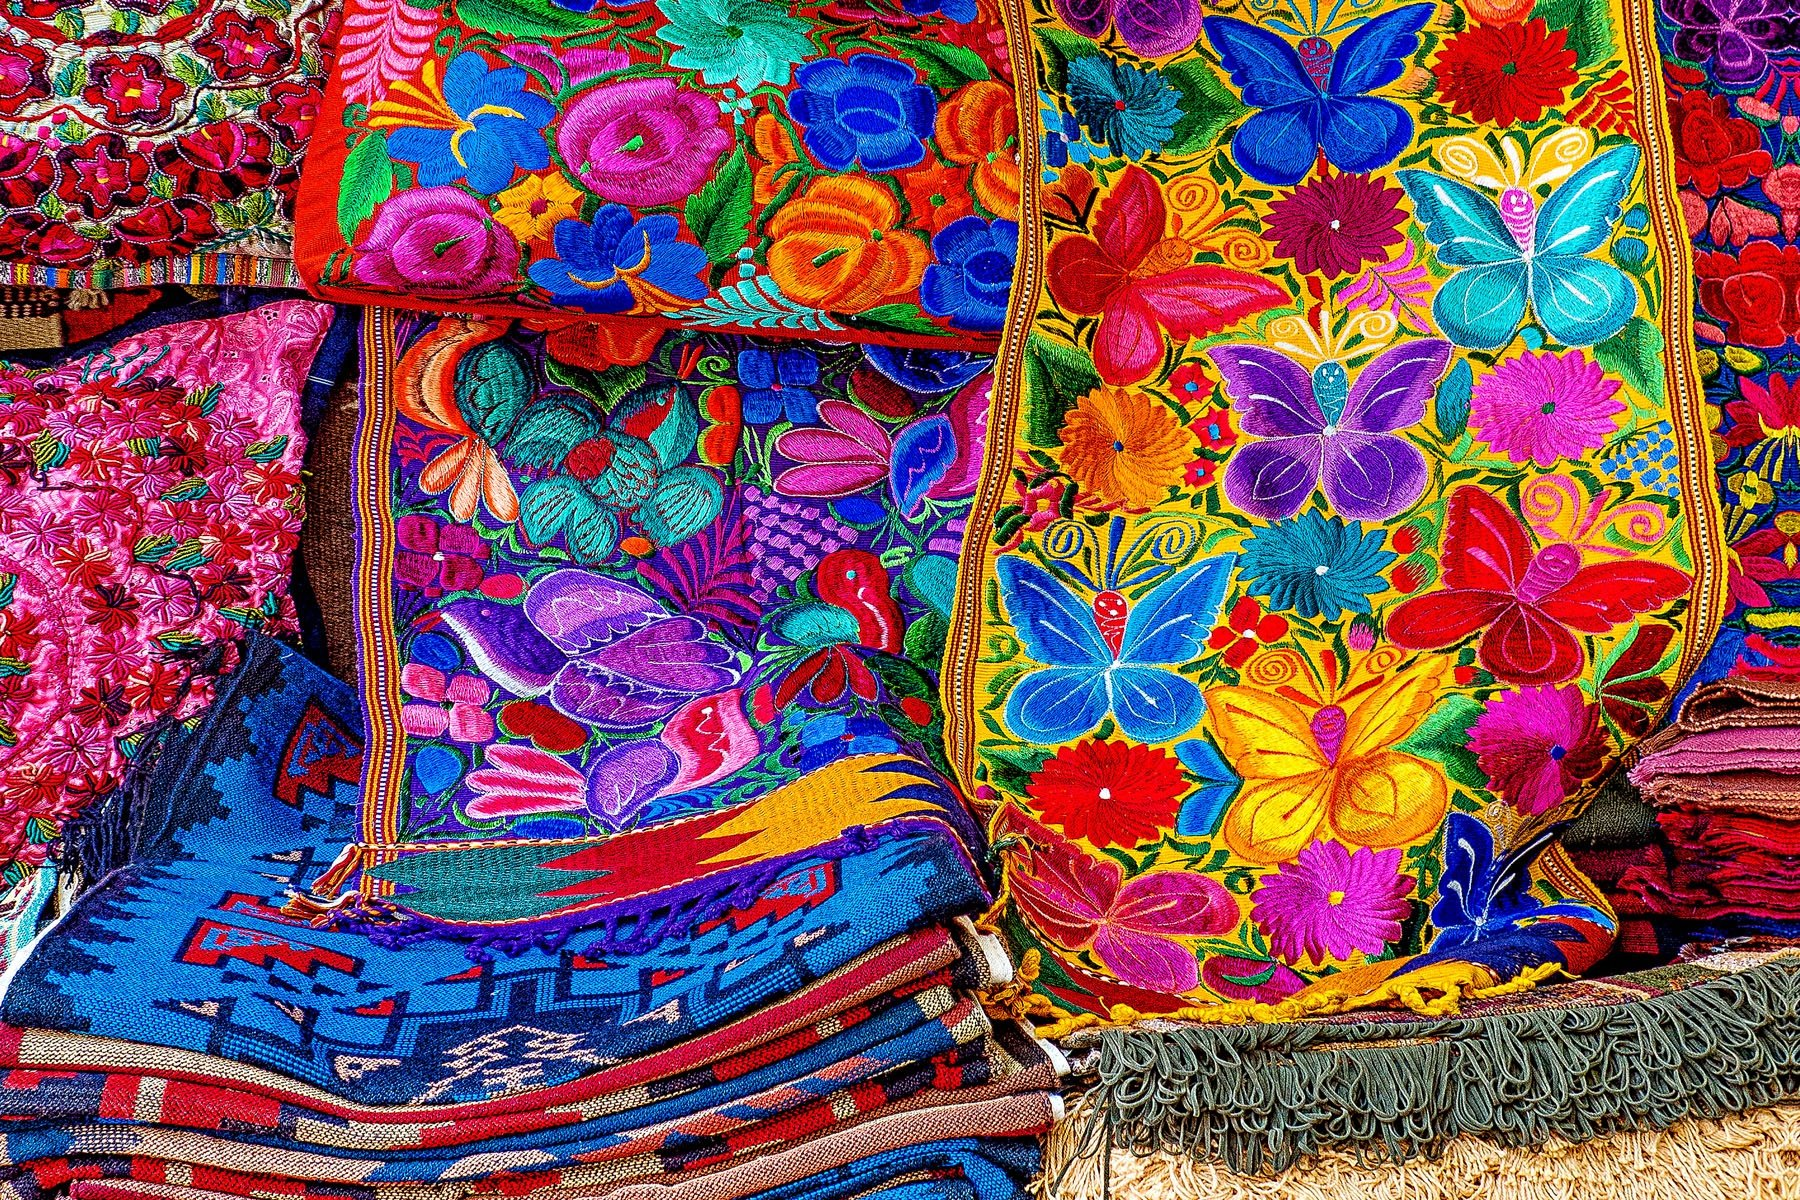 PILE OF COLOR - Santa Fe is another one of those places where photographers just can't stop pushing that button. The opportunities for wonderful photographs are endless. This shot was taken in a small street shop.